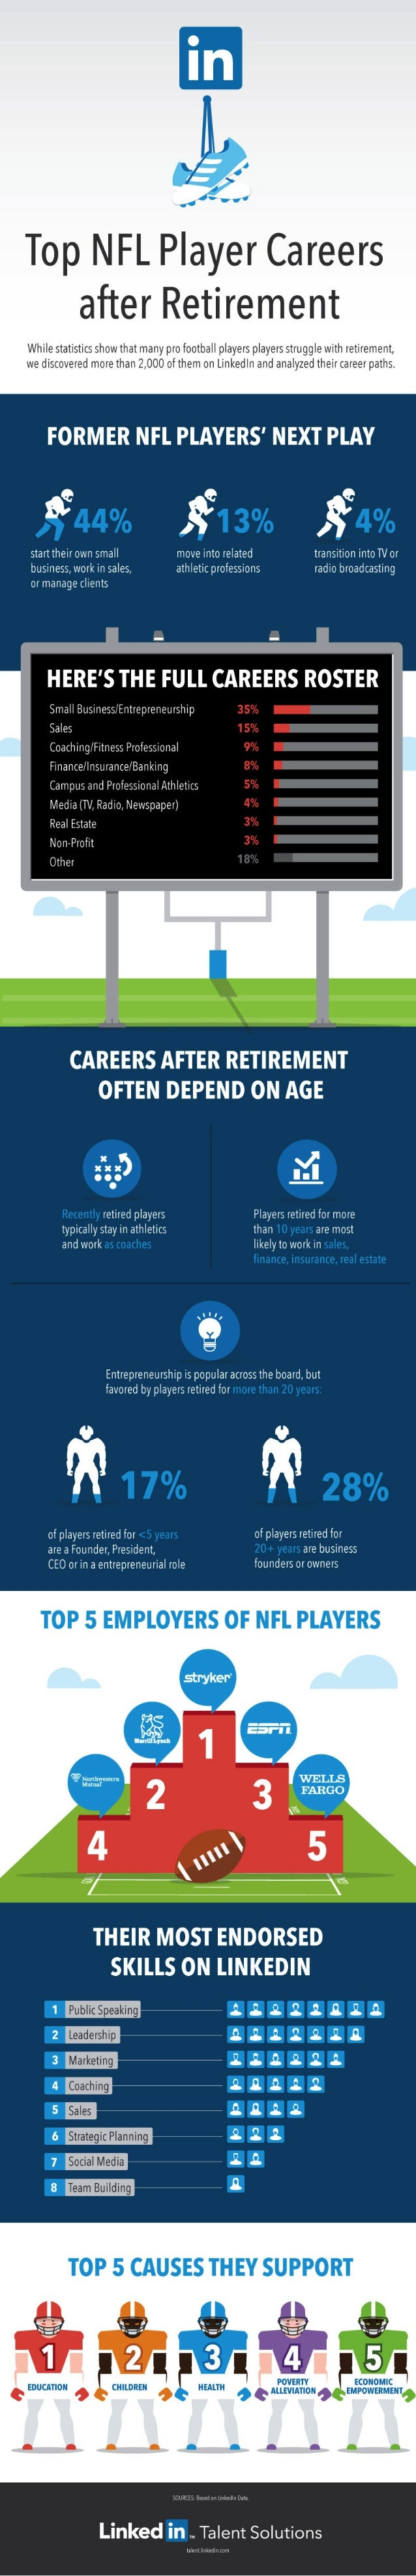 Top NFL Players Careers After Retirement | Infographic